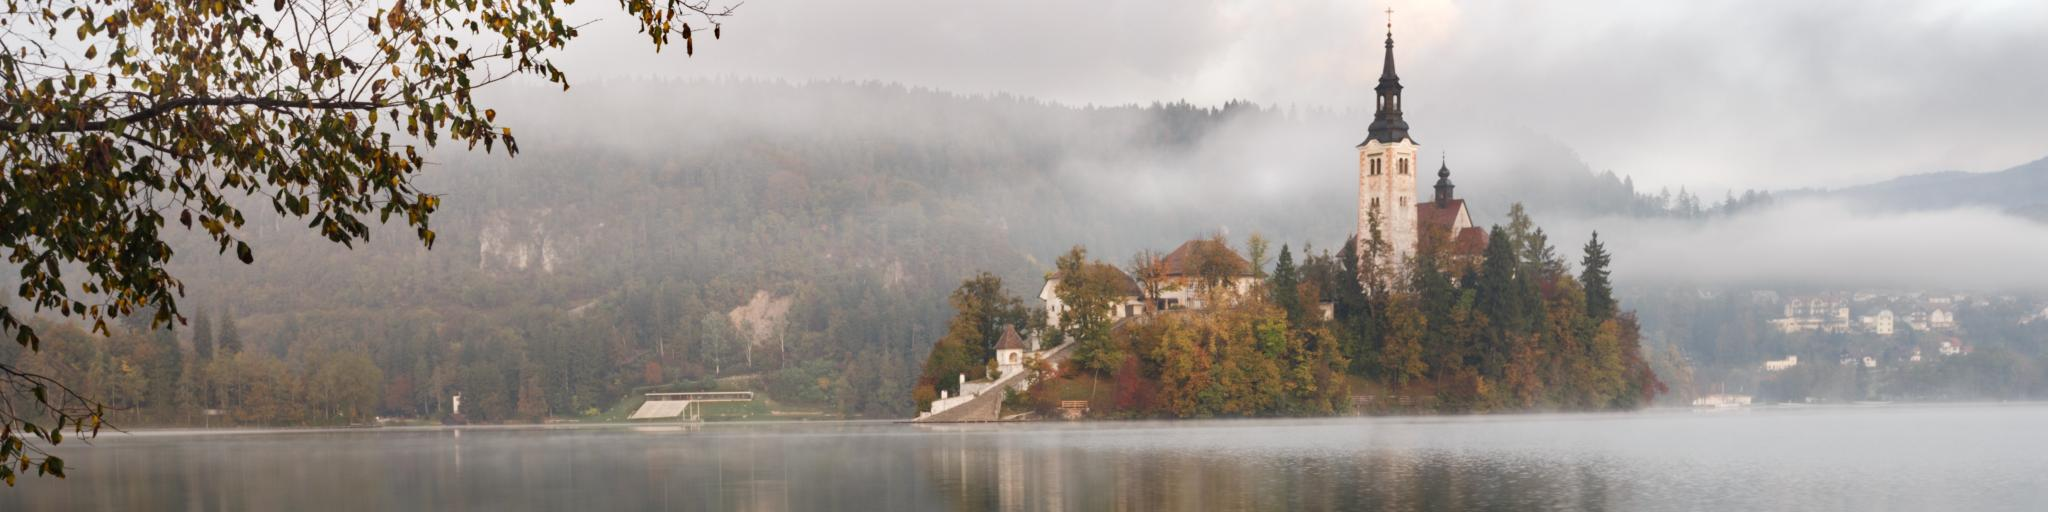 A wooden boat is docked under a tree in front of the famous Bled Castle in Lake Bled